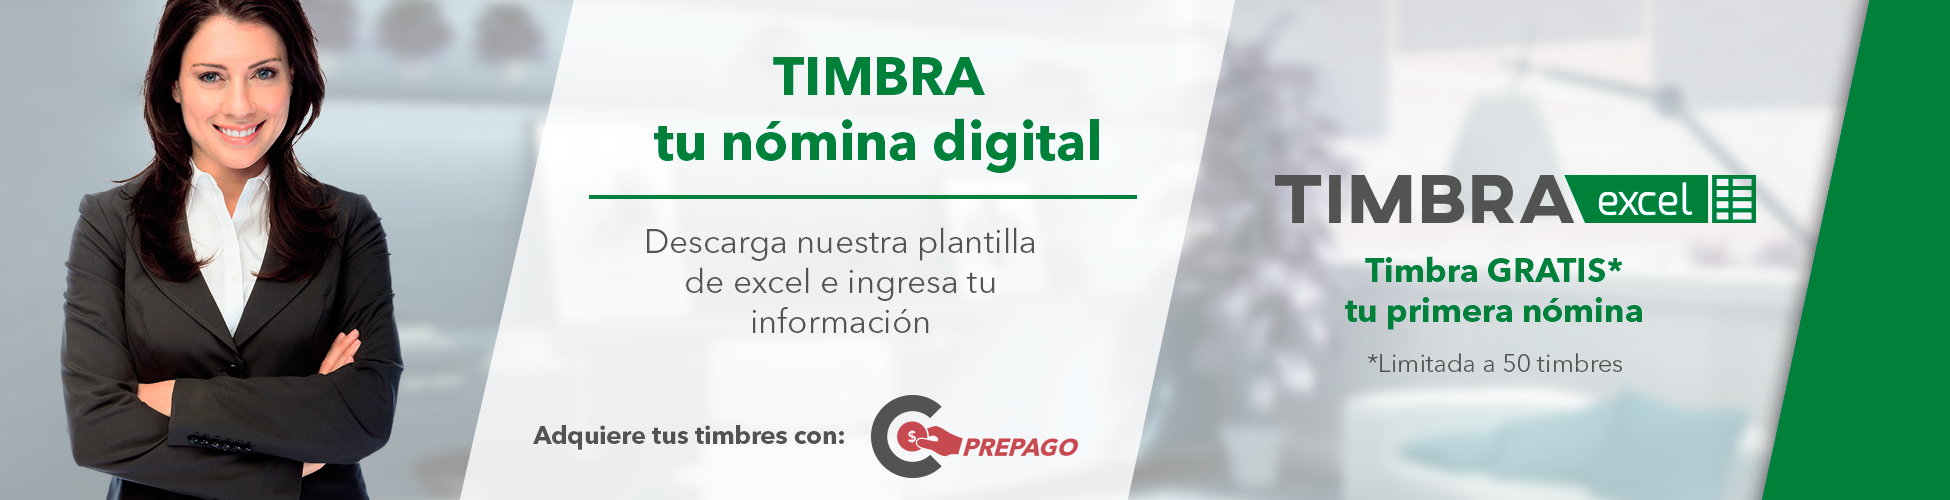 Timbra Excel